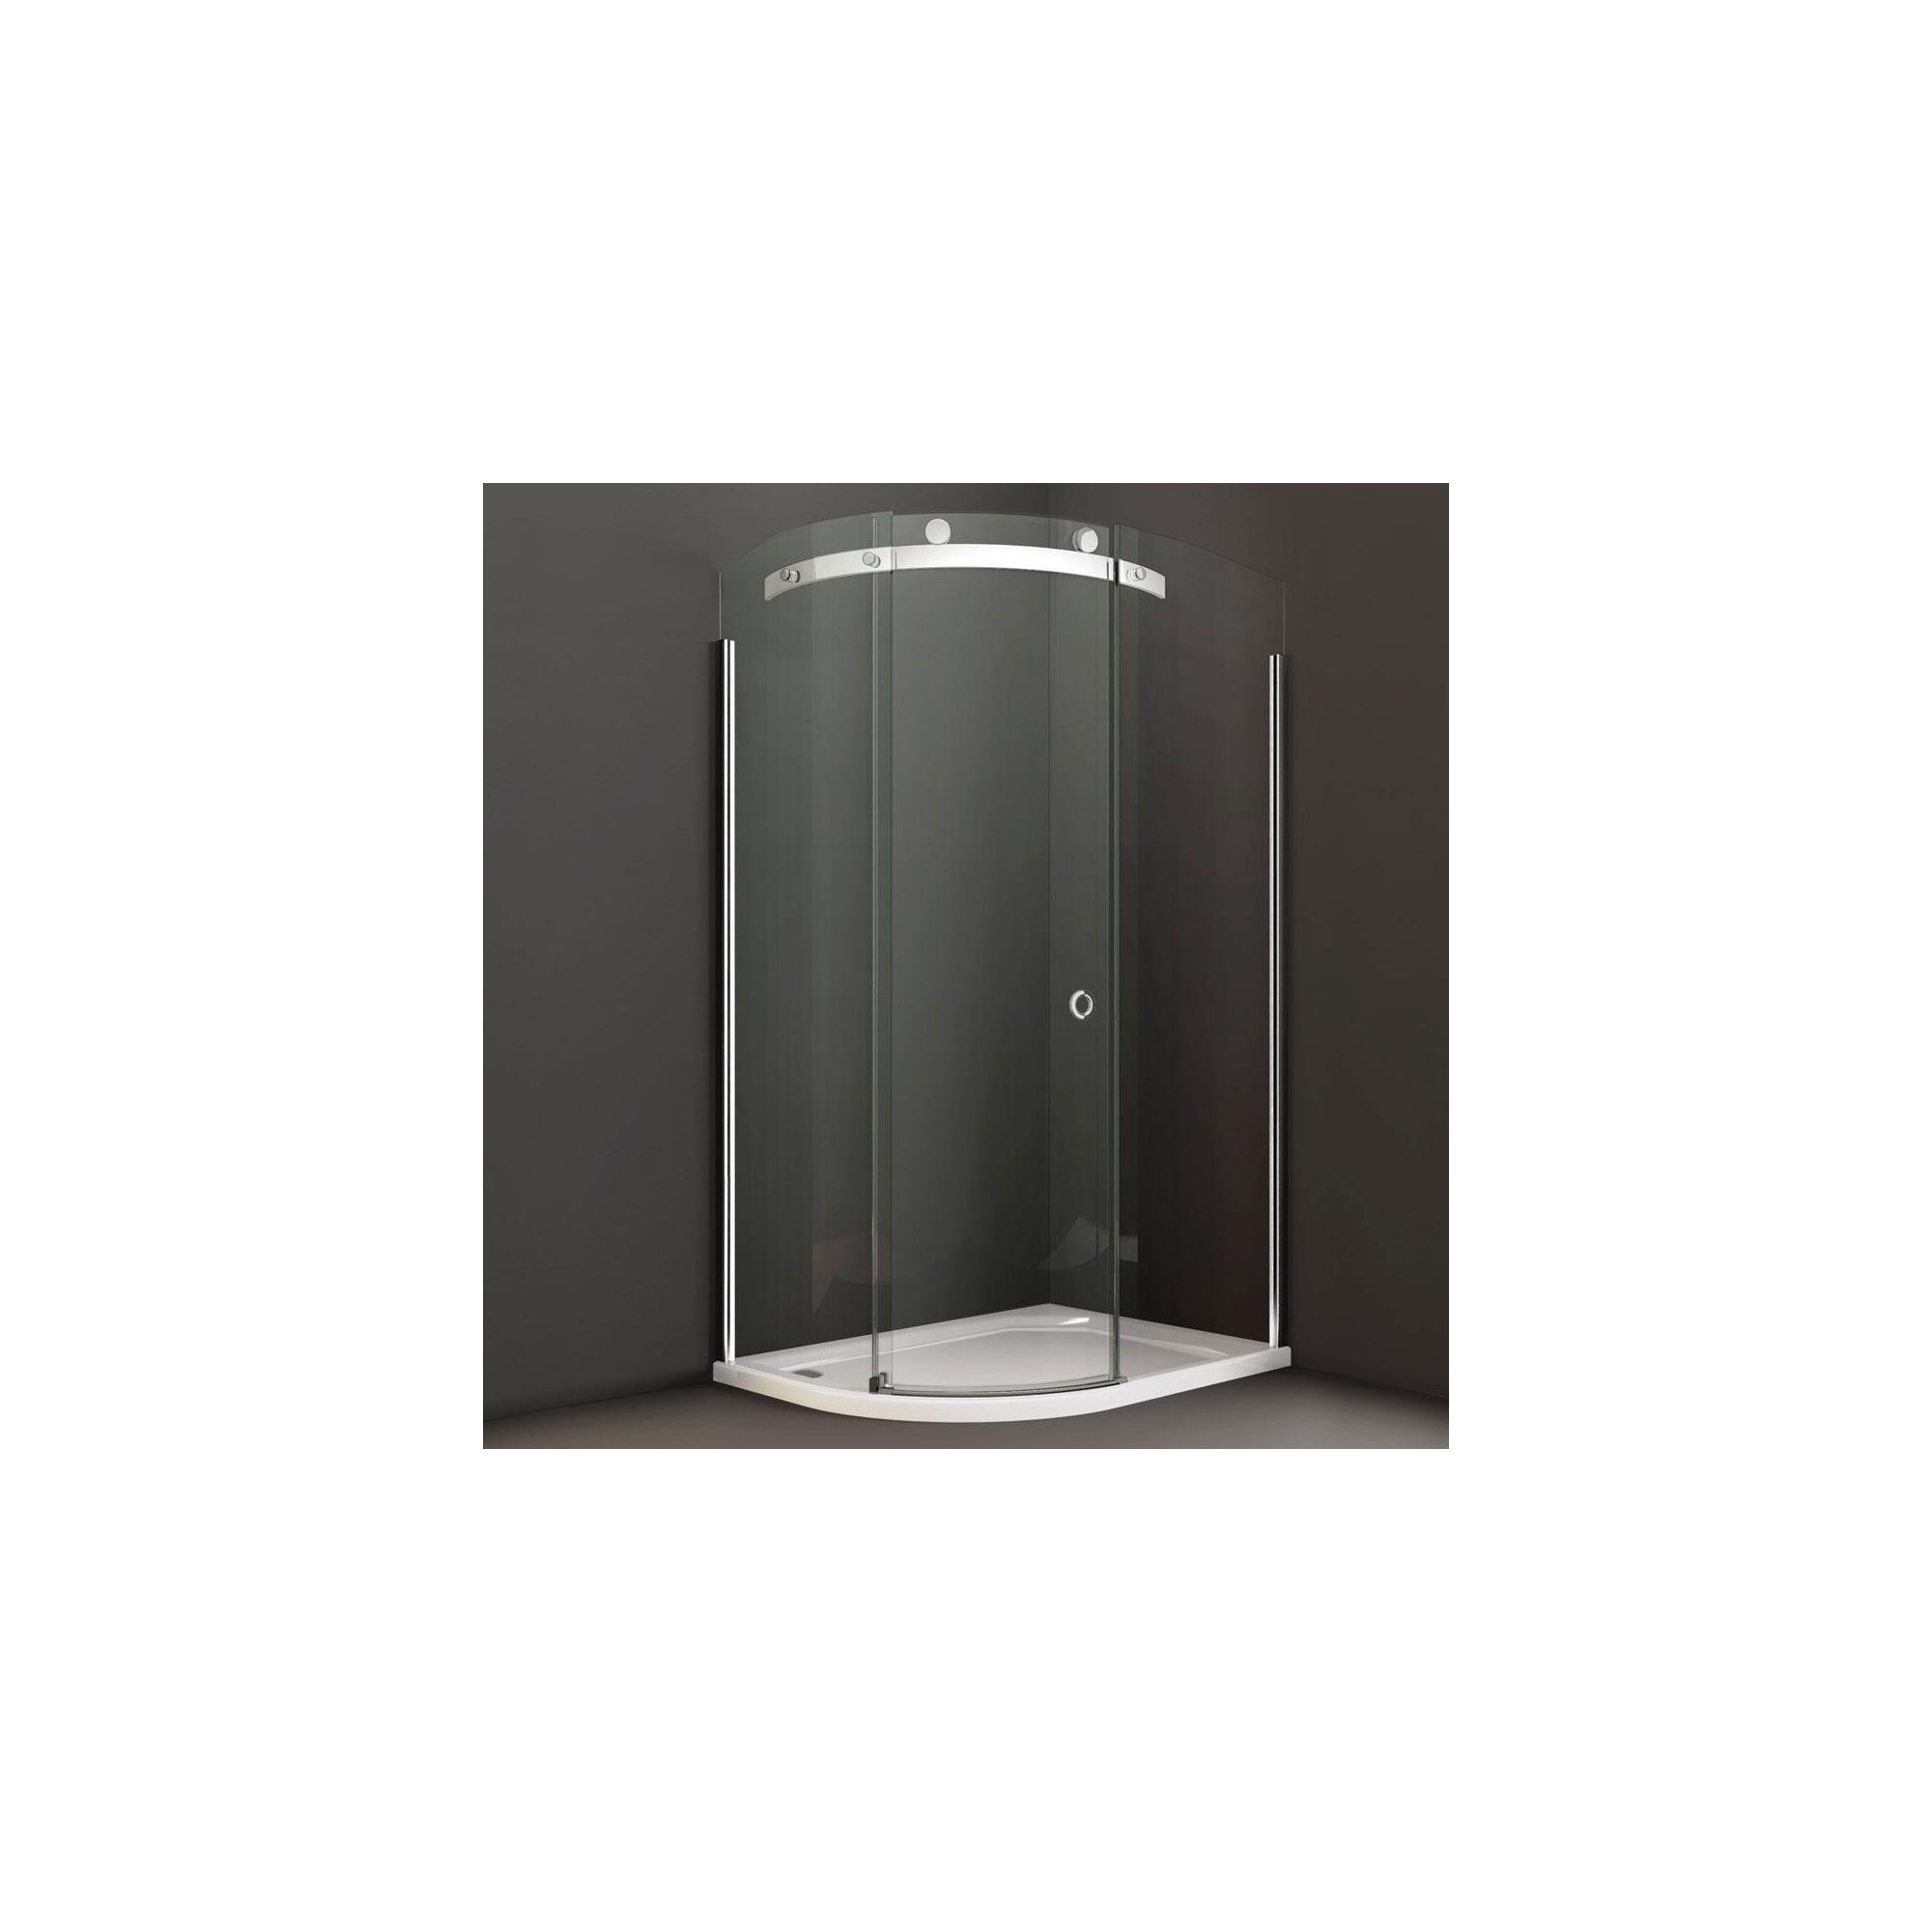 Merlyn Series 10 Offset Quadrant Shower Door, 1200mm x 800mm, 10mm Clear Glass, Left Handed at Tesco Direct